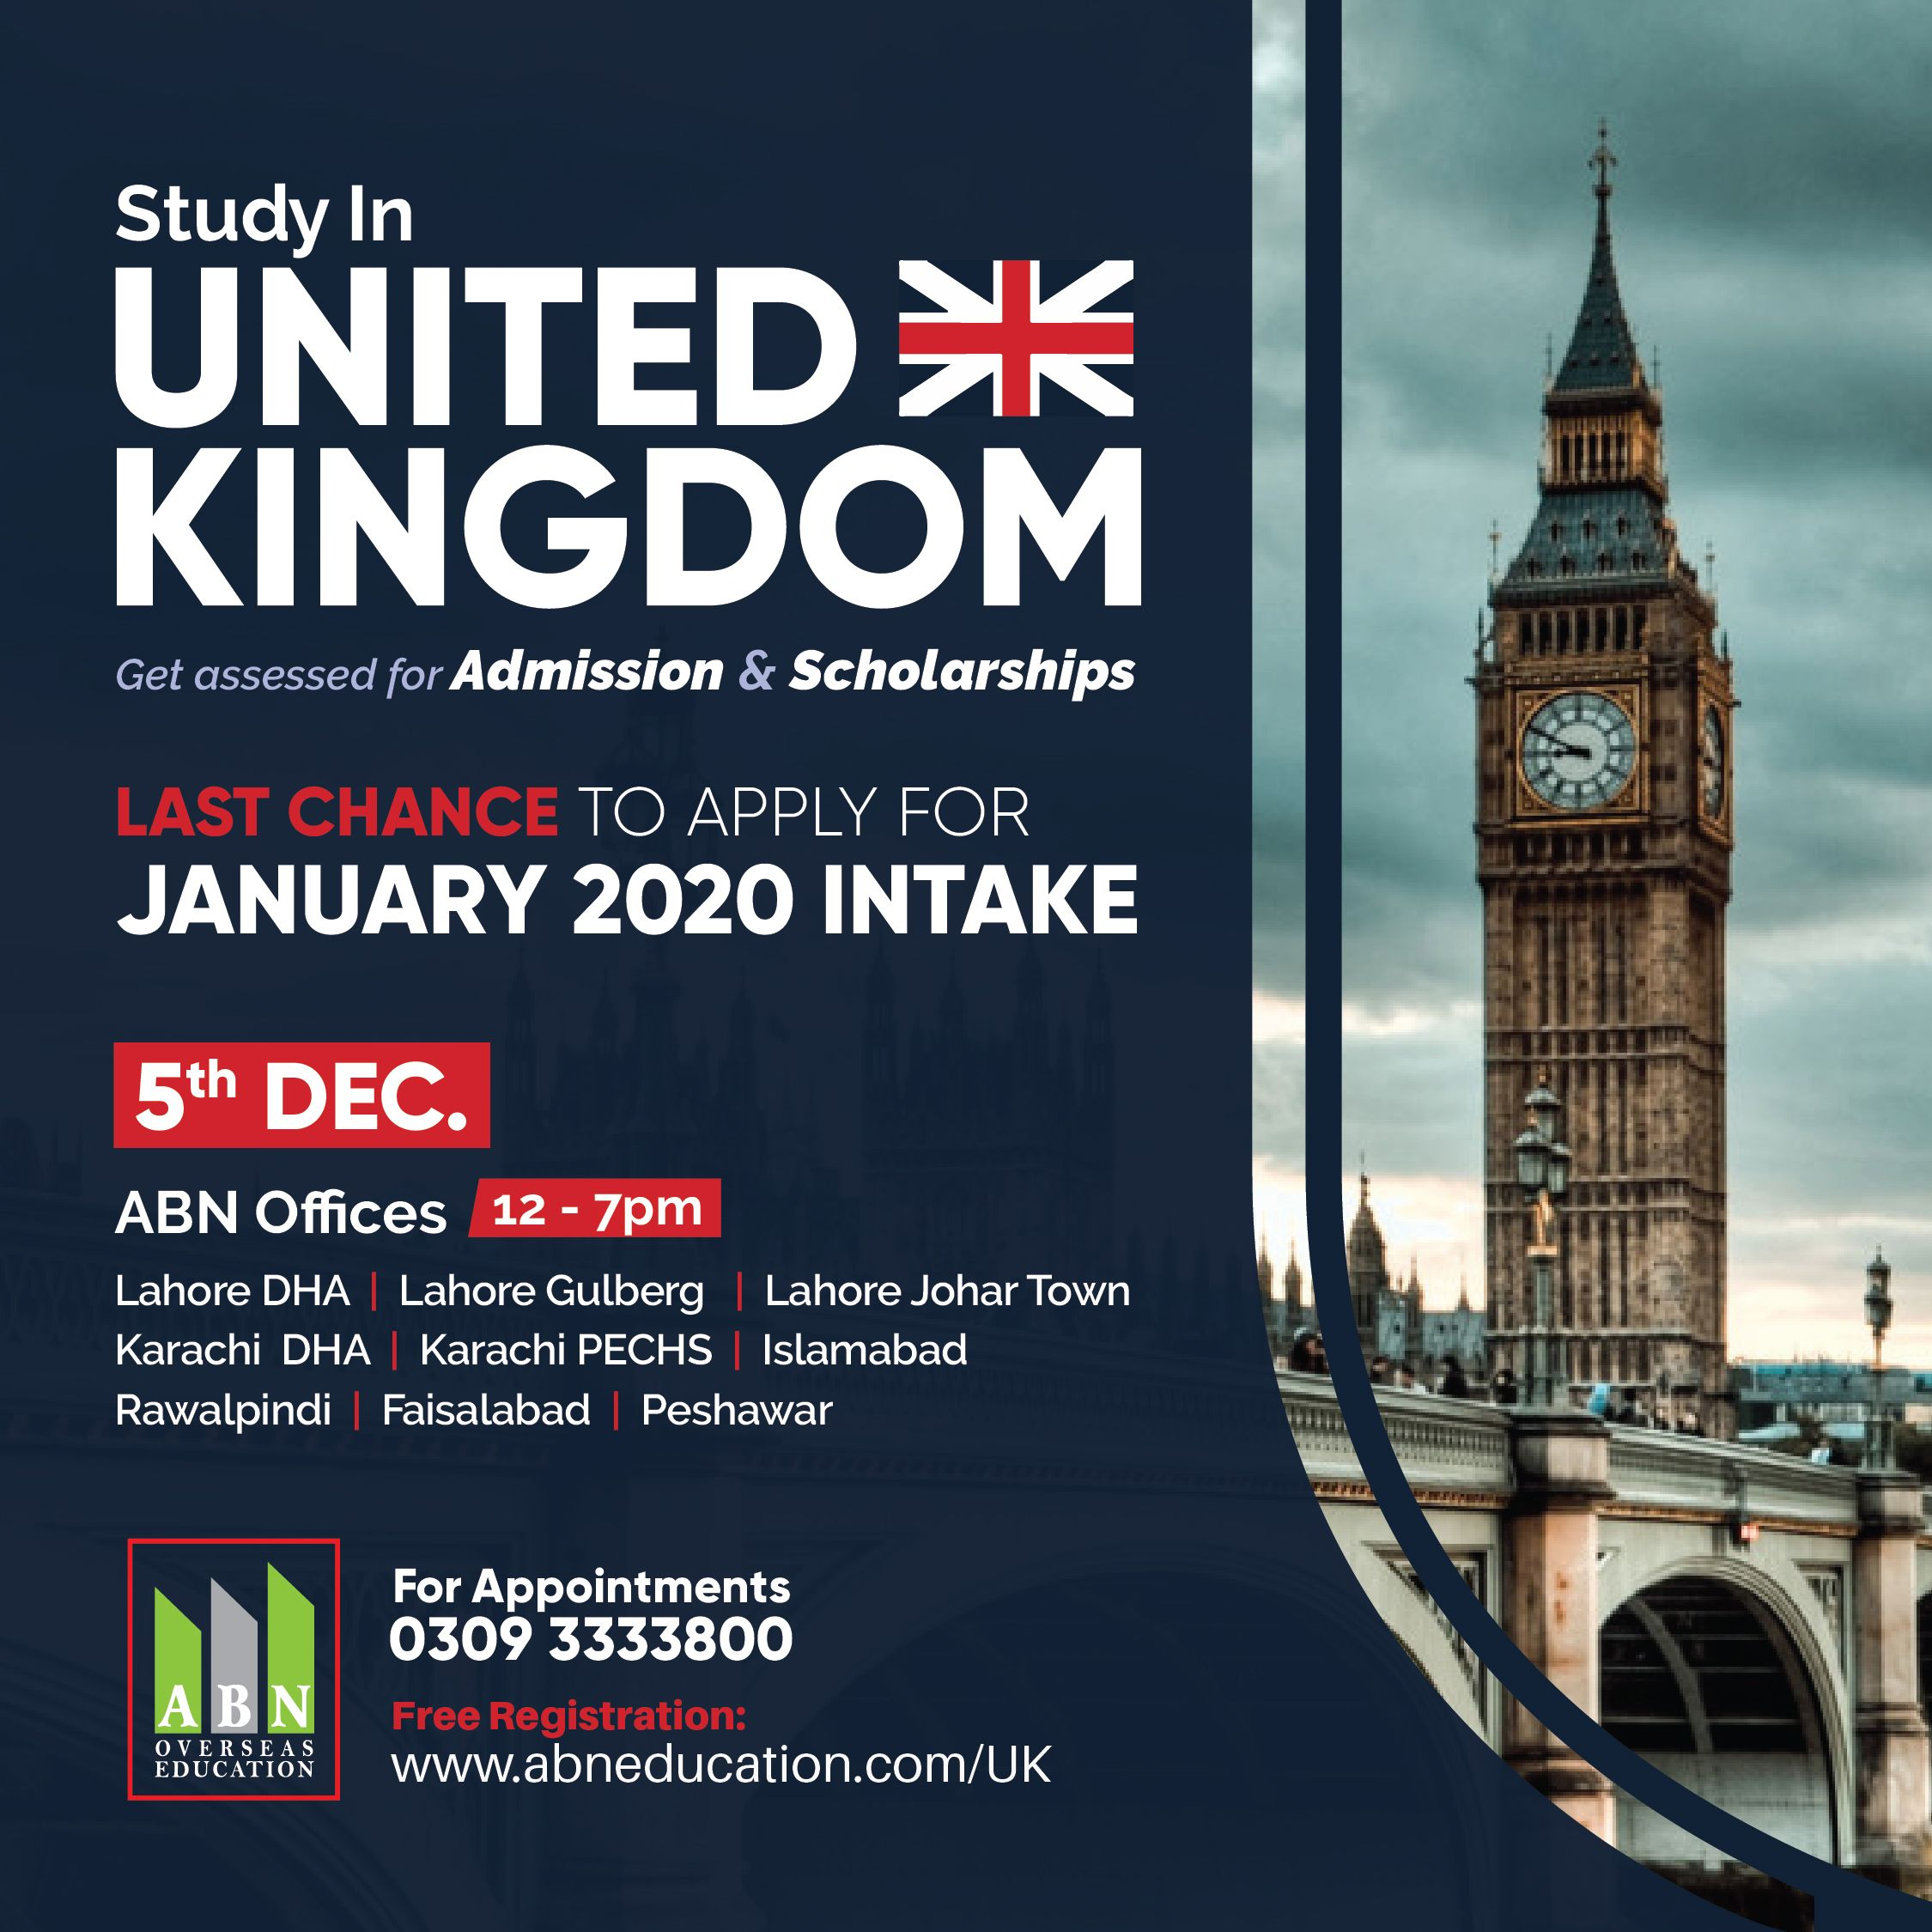 Study In Uk Overseas Education Education Poster Admissions Poster